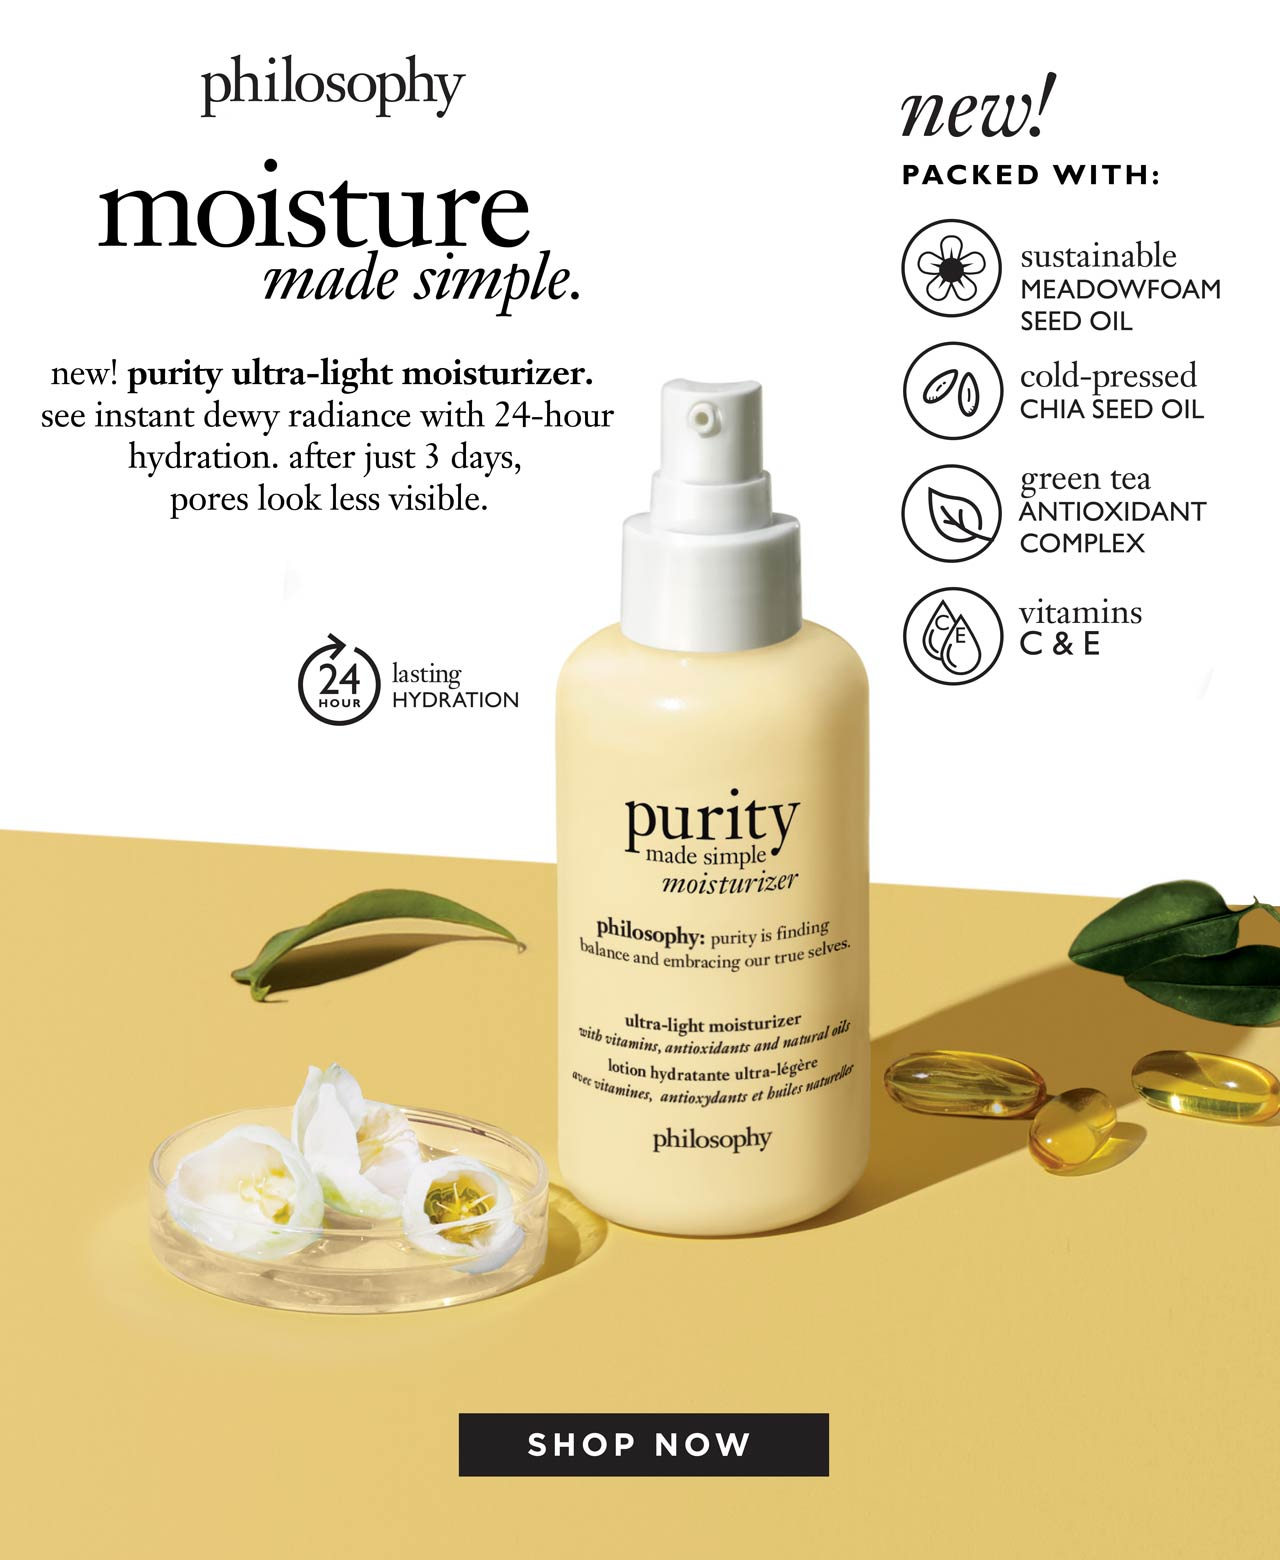 new! Purity ultra-light moisturizer. Shop now